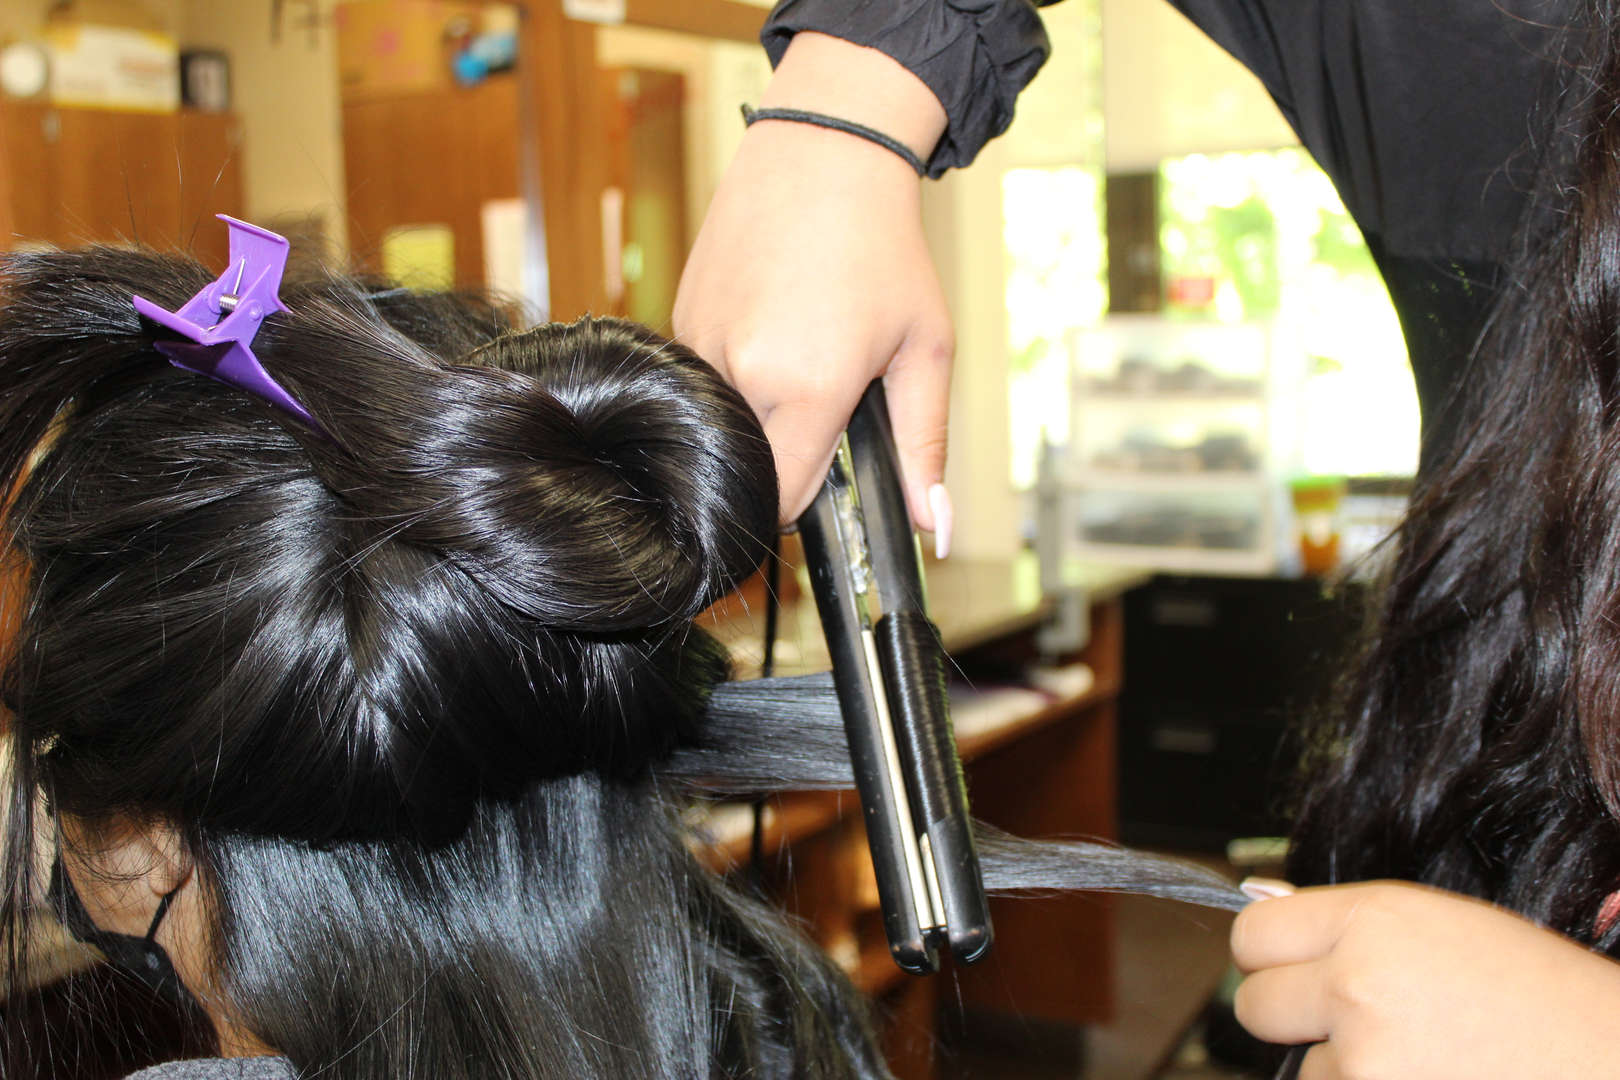 Close up of hair beign curled using a curling iron